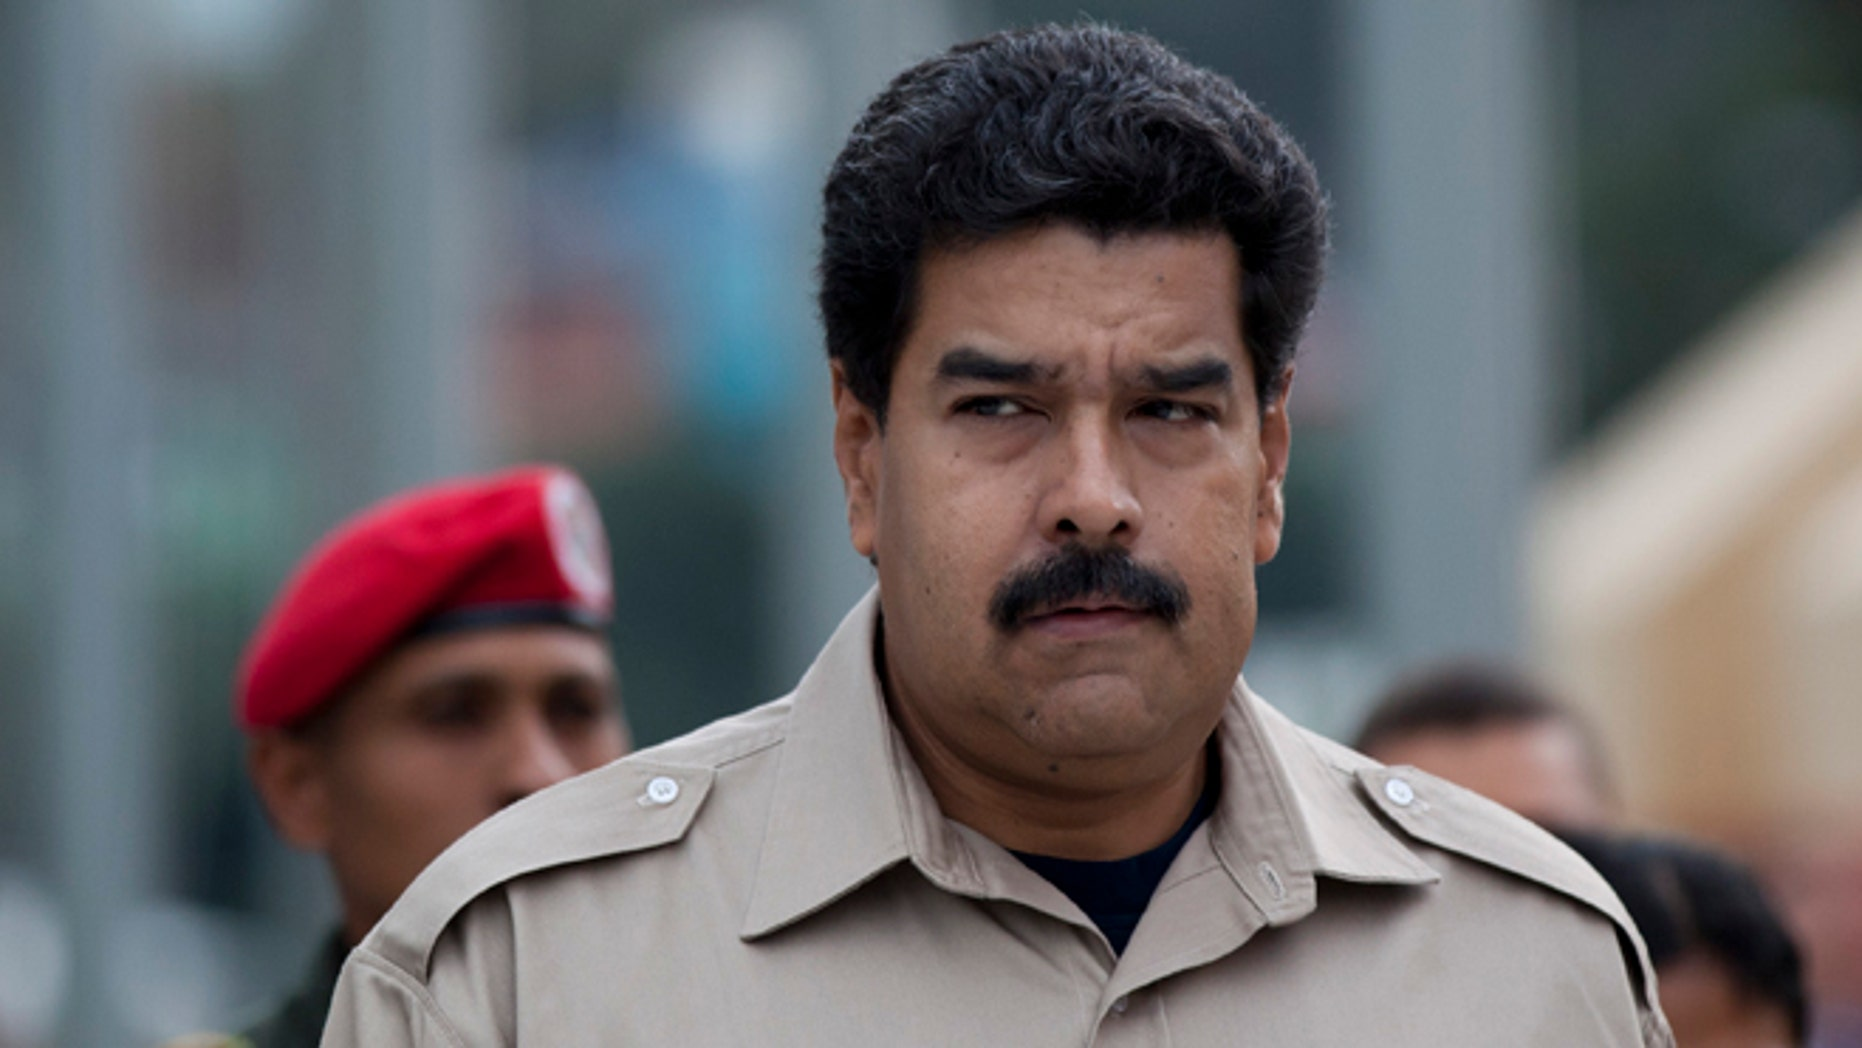 President Nicolas Maduro arrives at the Military Museum to visit the tomb of the late President Hugo Chavez in Caracas, Venezuela, Tuesday, Nov. 5, 2013. Maduro's decree establishing Dec. 8 as a public holiday in honor of Chavez was announced Tuesday. The holiday will commemorate Chavez's final public appearance, when the cancer stricken leader anointed Maduro as his successor. (AP Photo/Ariana Cubillos)